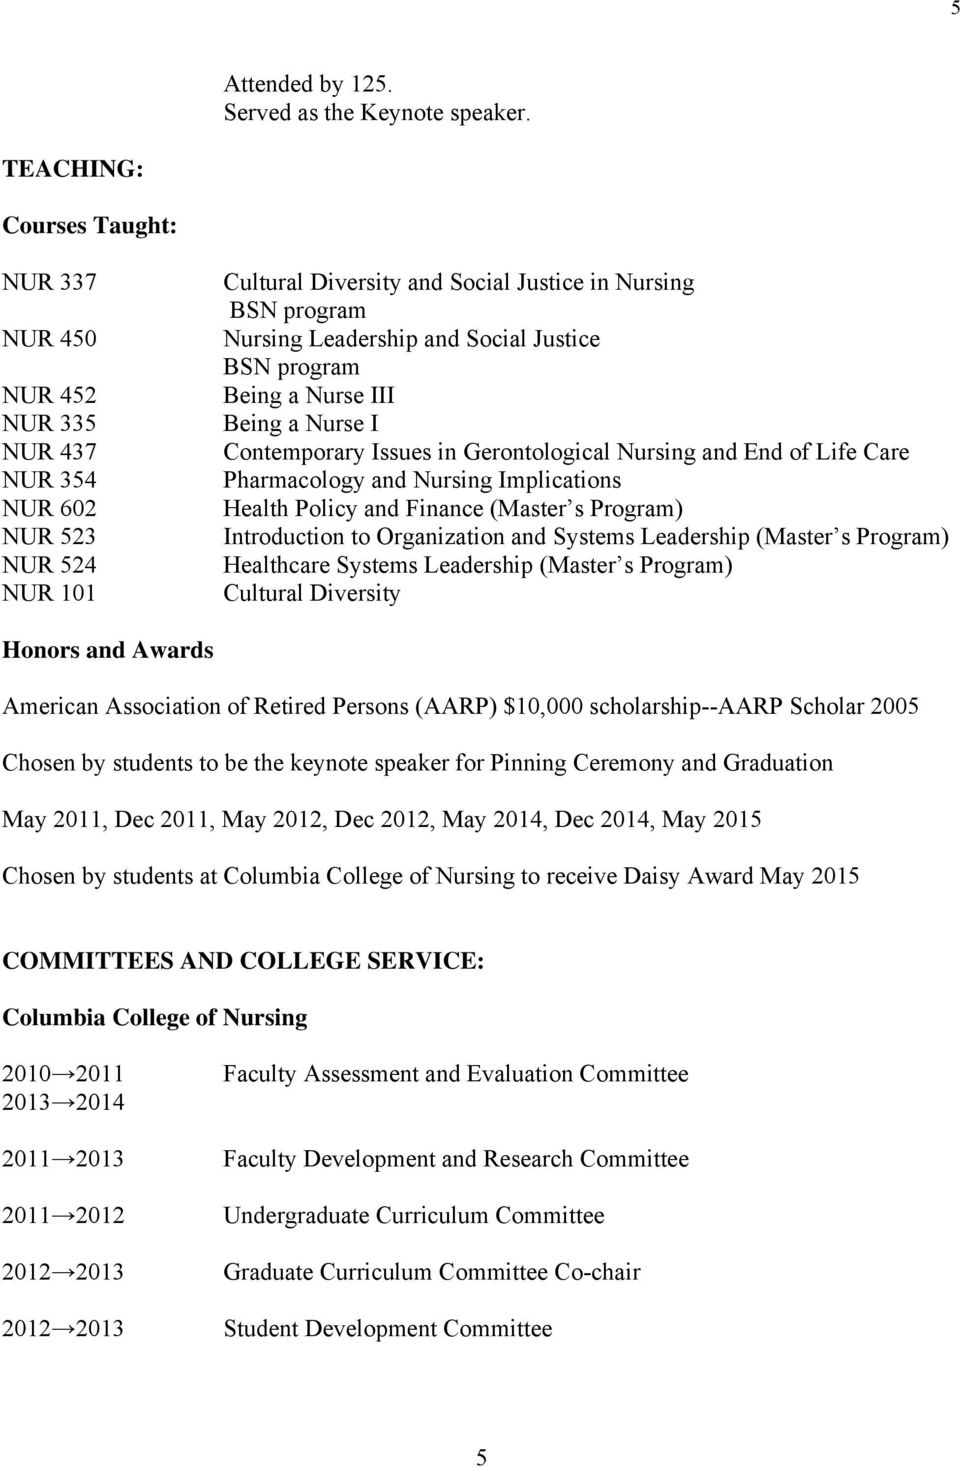 Justice BSN program Being a Nurse III Being a Nurse I Contemporary Issues in Gerontological Nursing and End of Life Care Pharmacology and Nursing Implications Health Policy and Finance (Master s